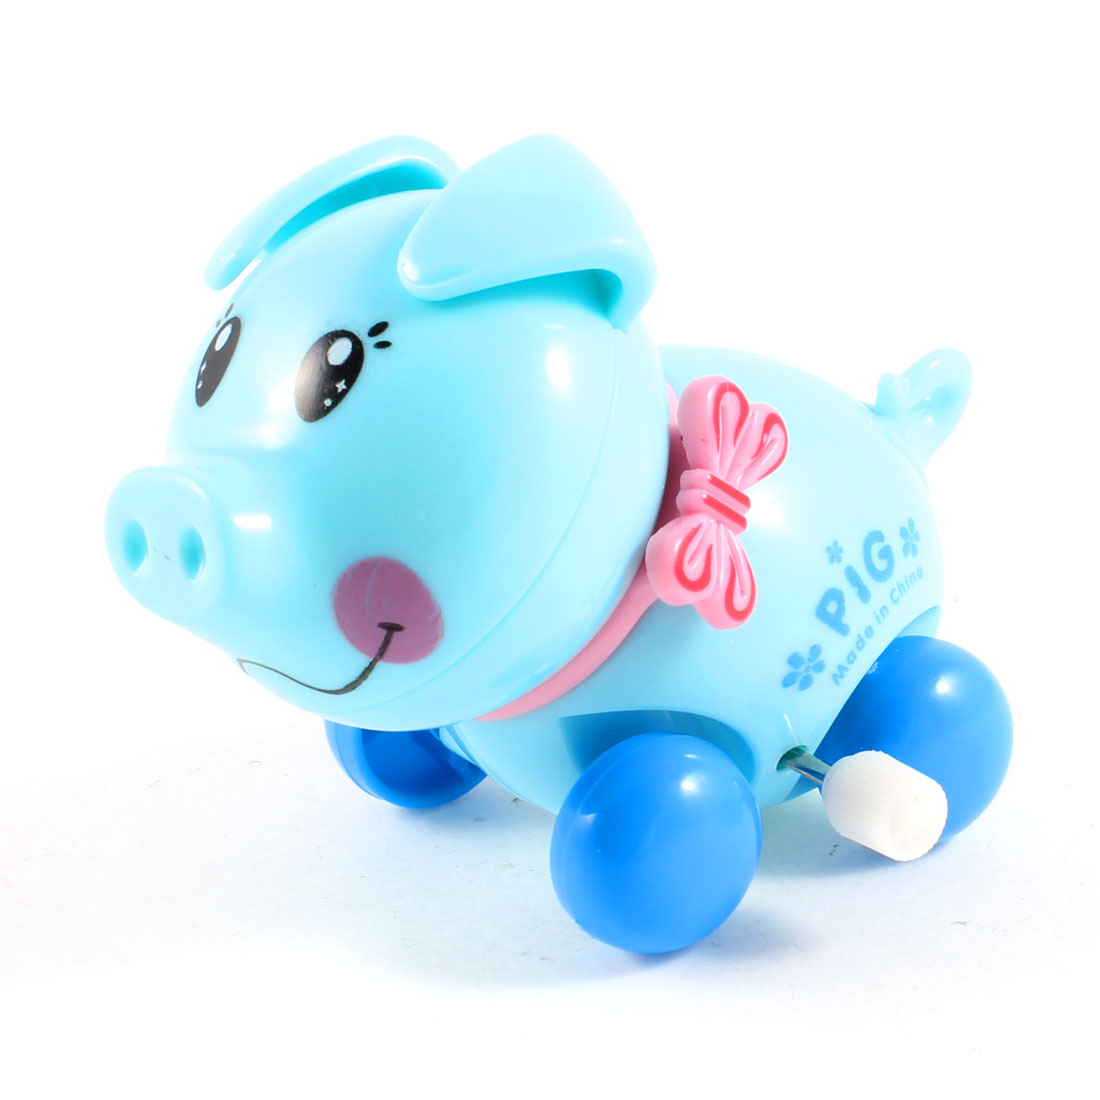 Pink Baby Blue Plastic Wind Up Design Clockwork Cartoon Pig Toy for Kids